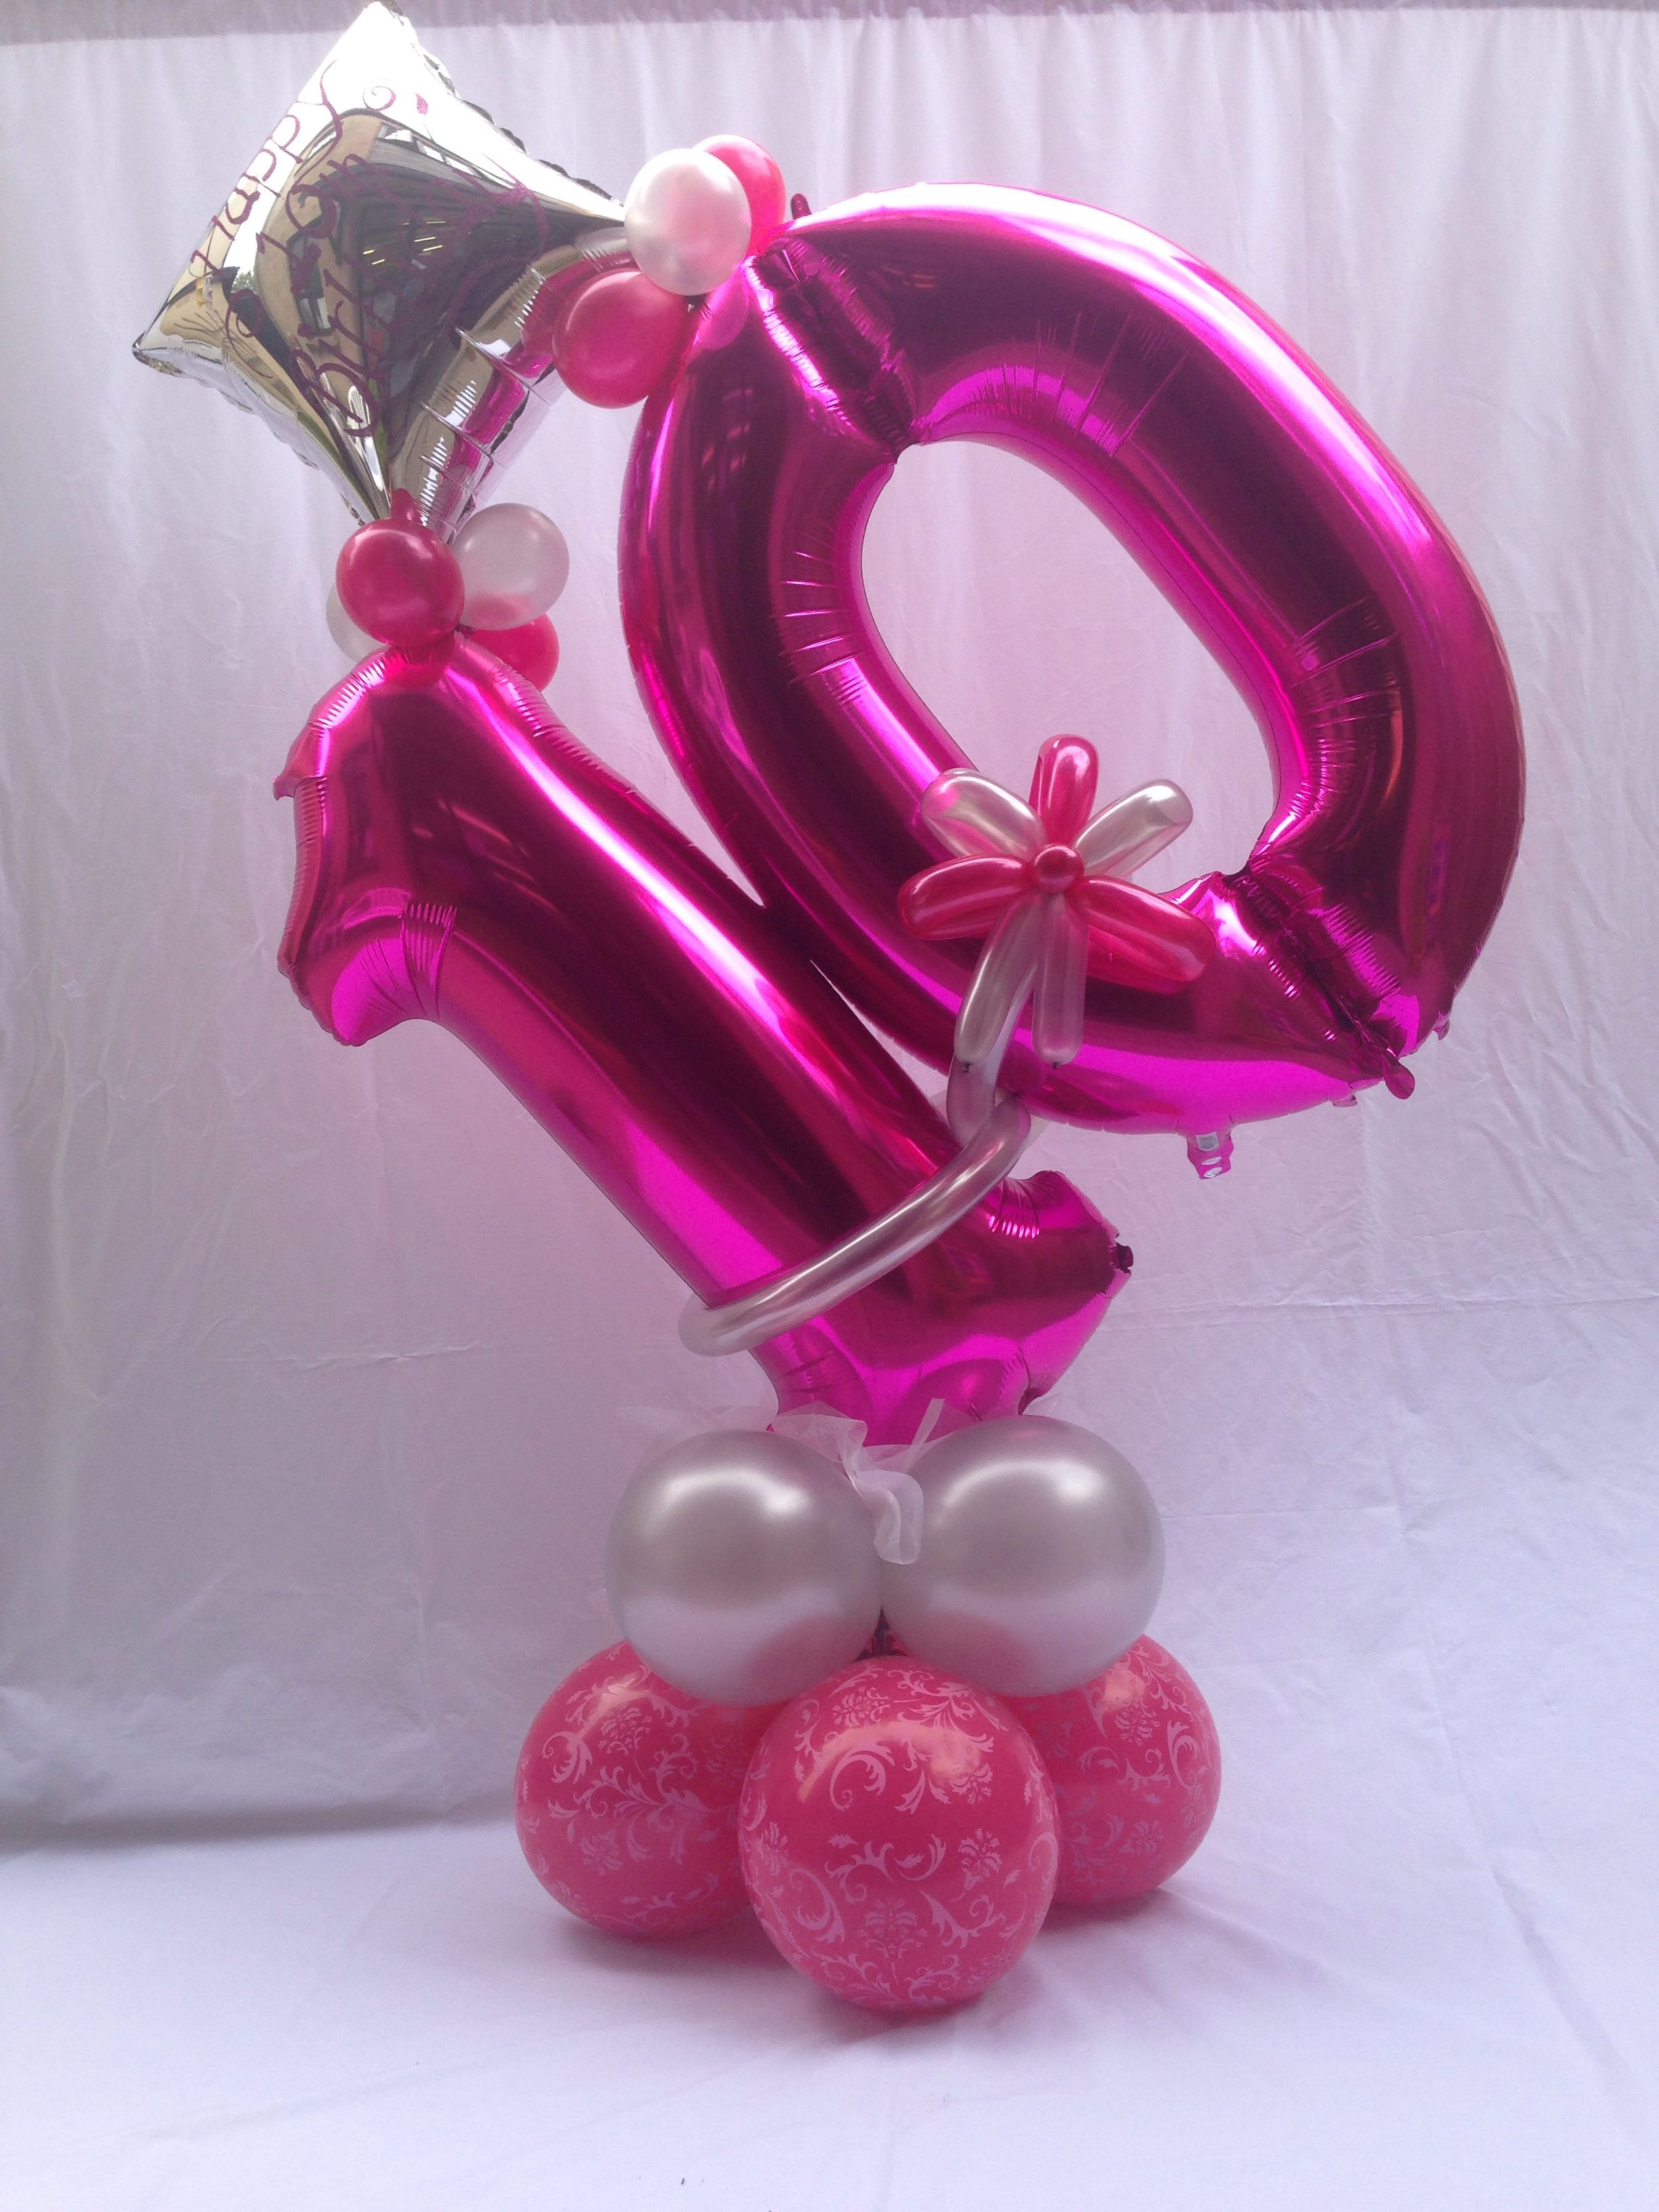 Age 10 Number Balloon Design Designed By Balloonbouquets Ukcouk